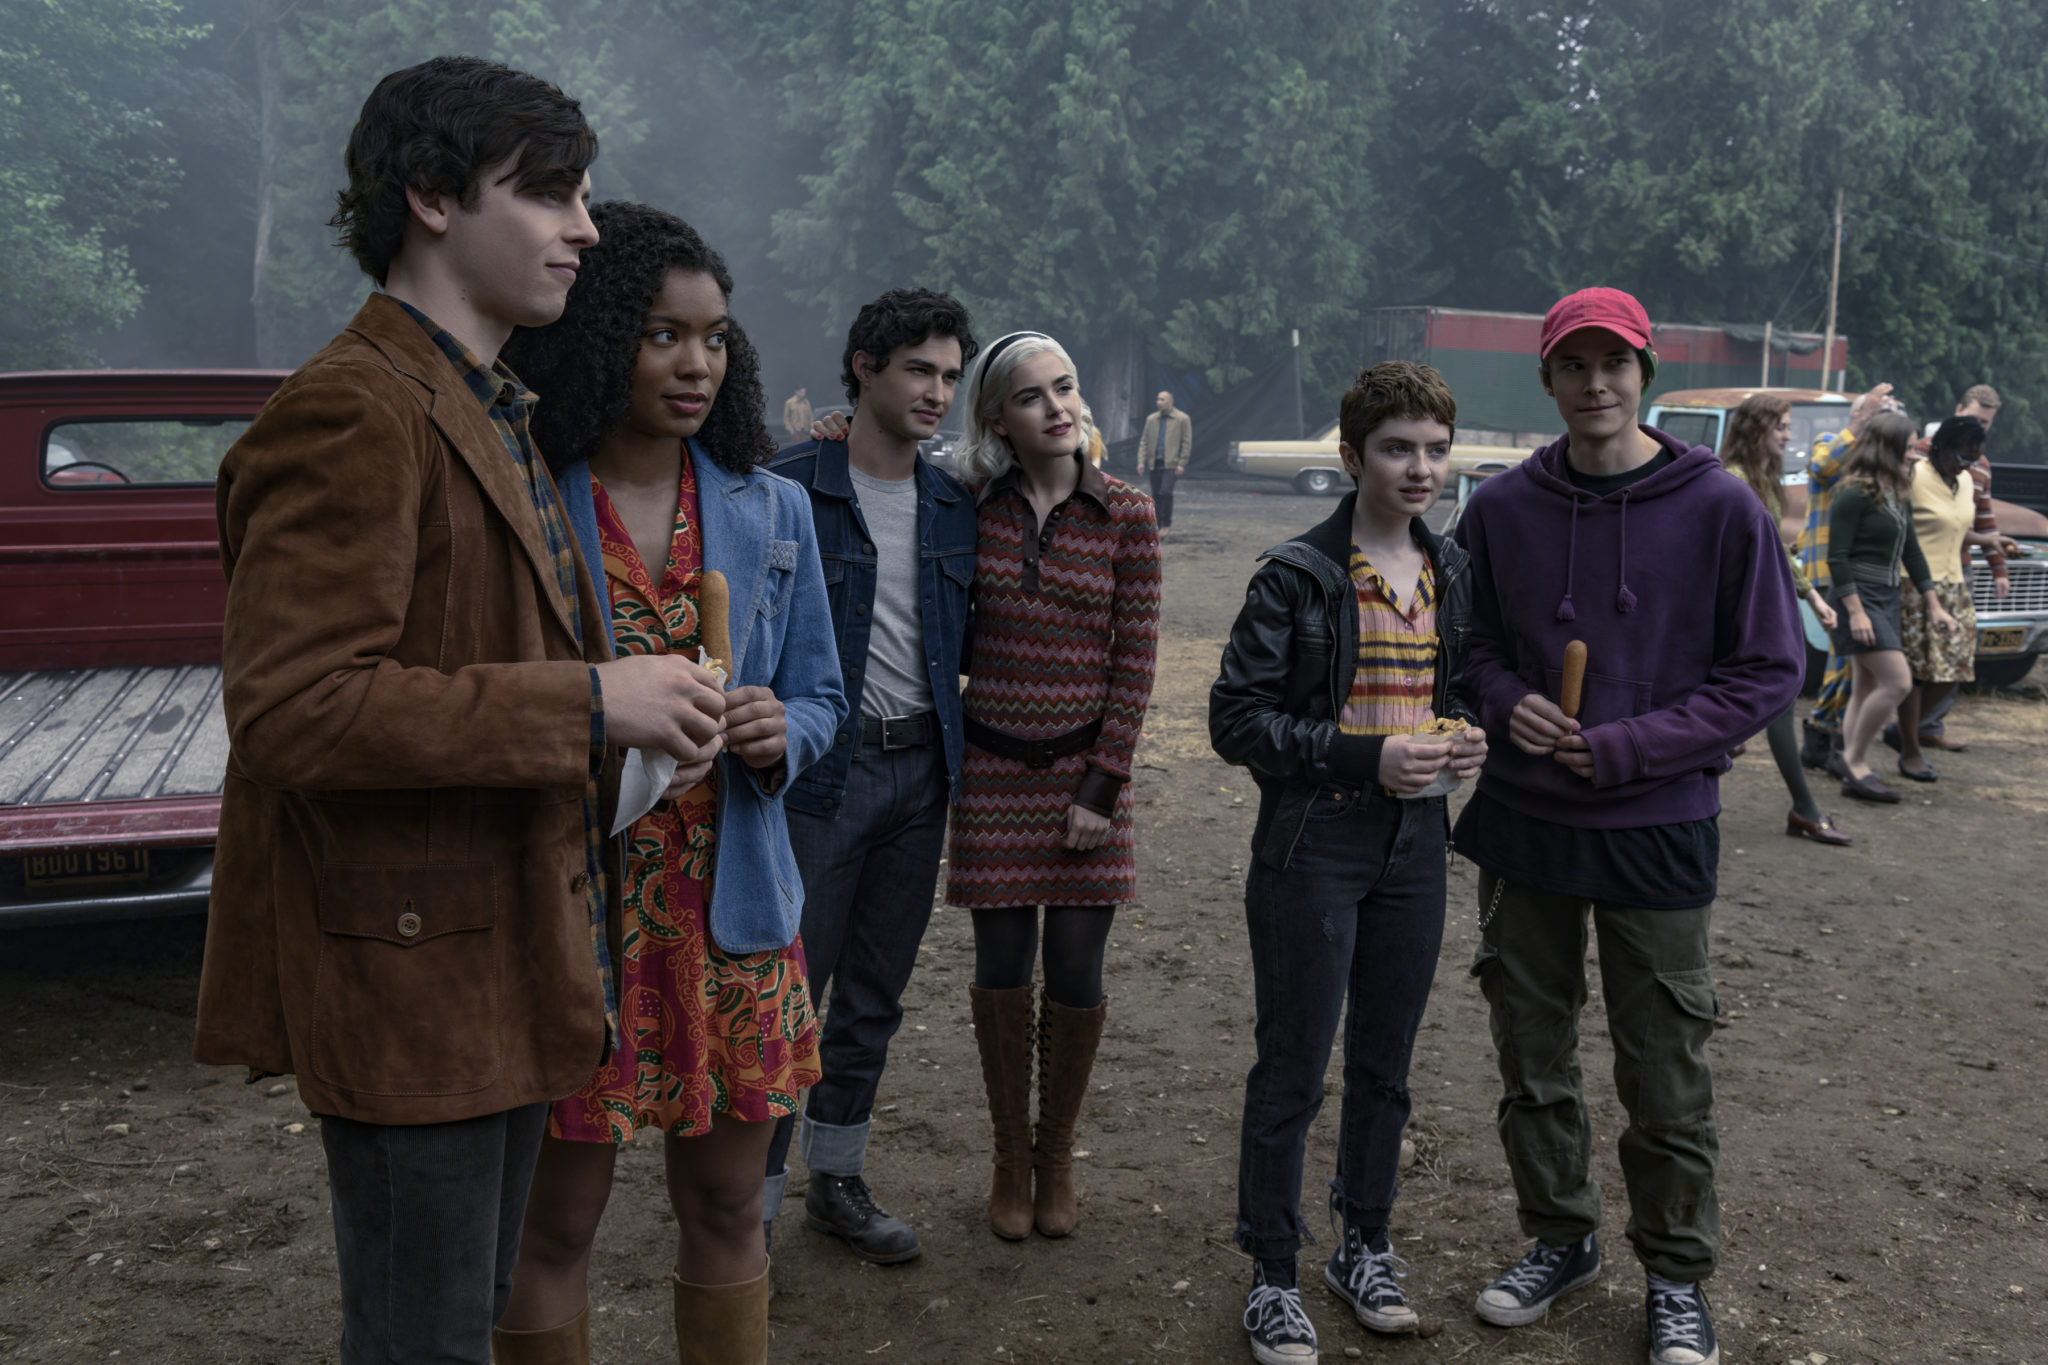 Watch Chilling Adventures Of Sabrina Part 3 Music Video